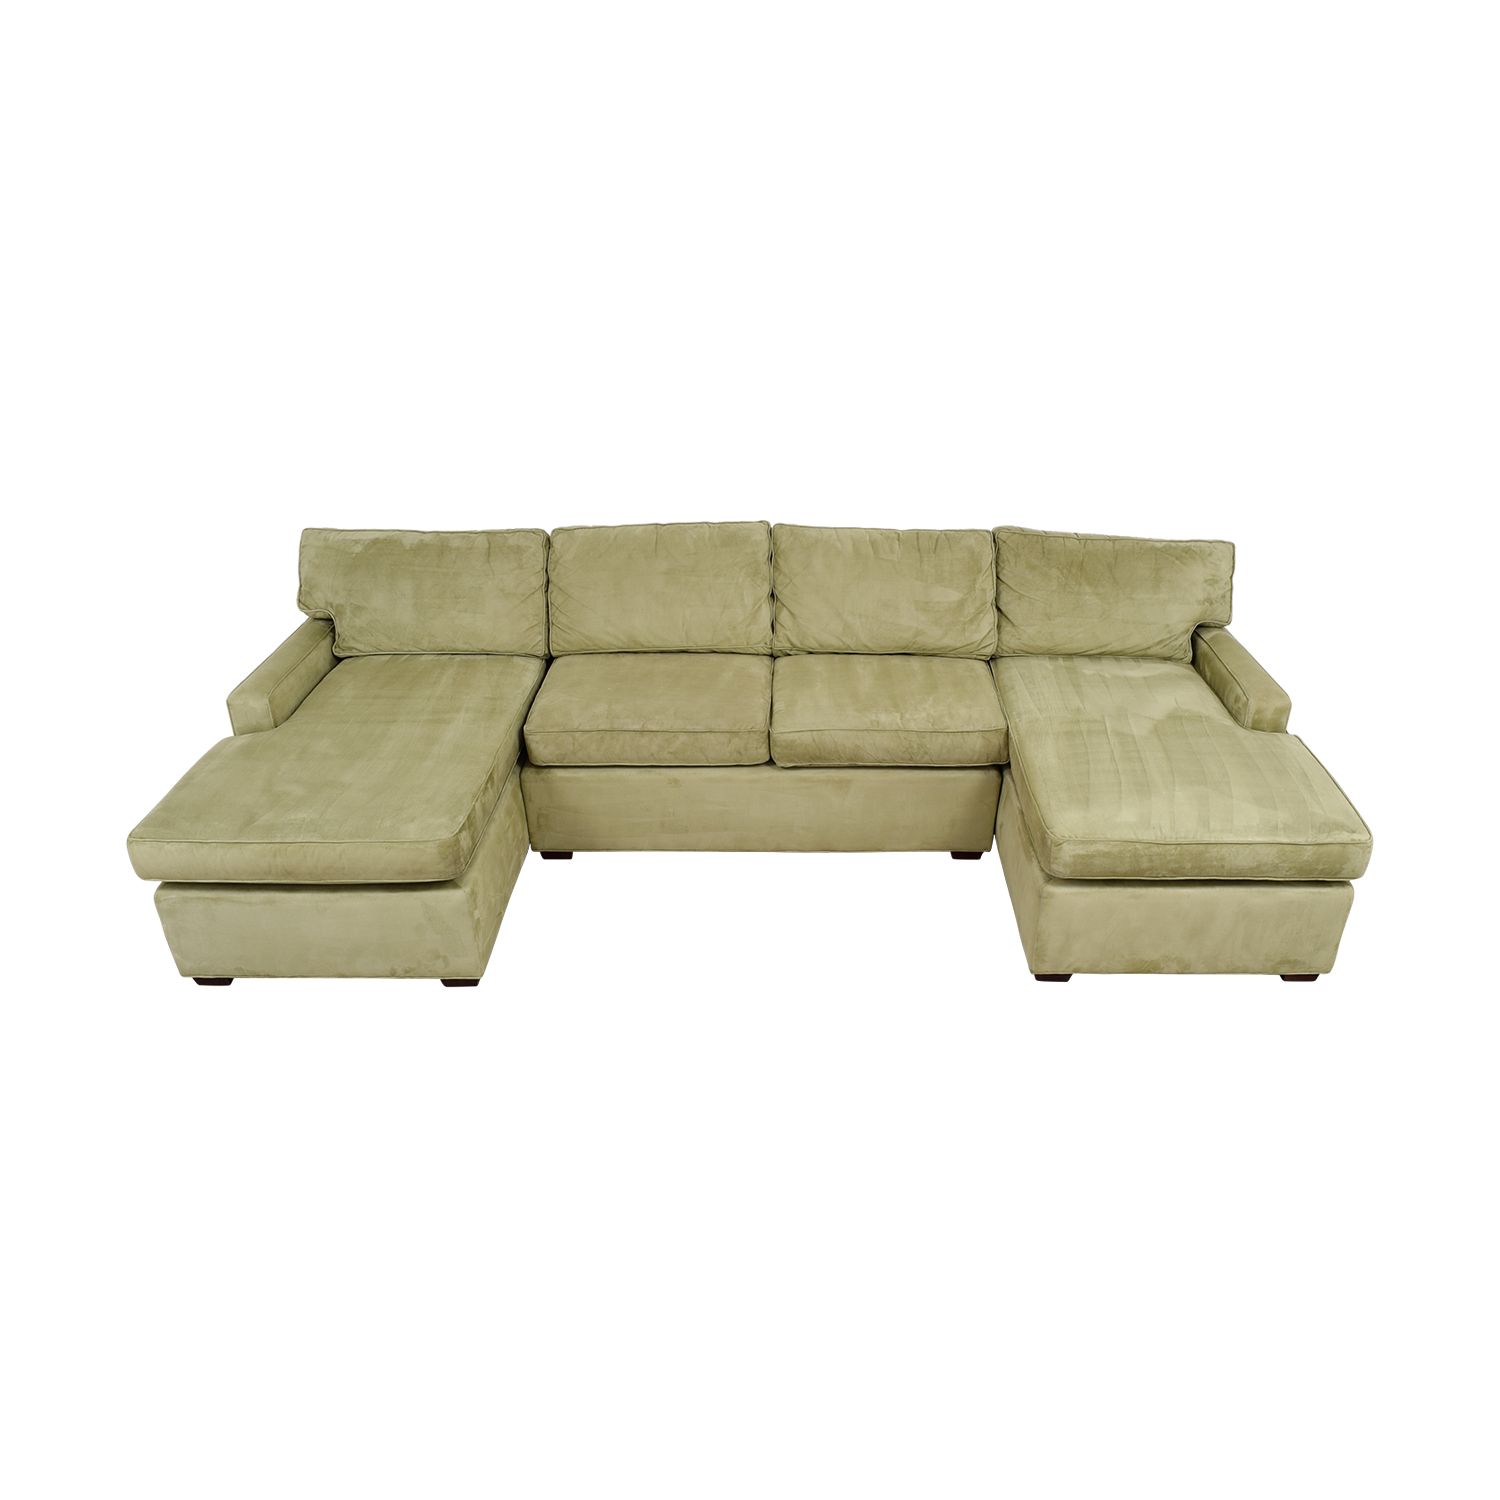 pottery barn chaise sofa sectional copenhagen randers sofascore sectionals used for sale